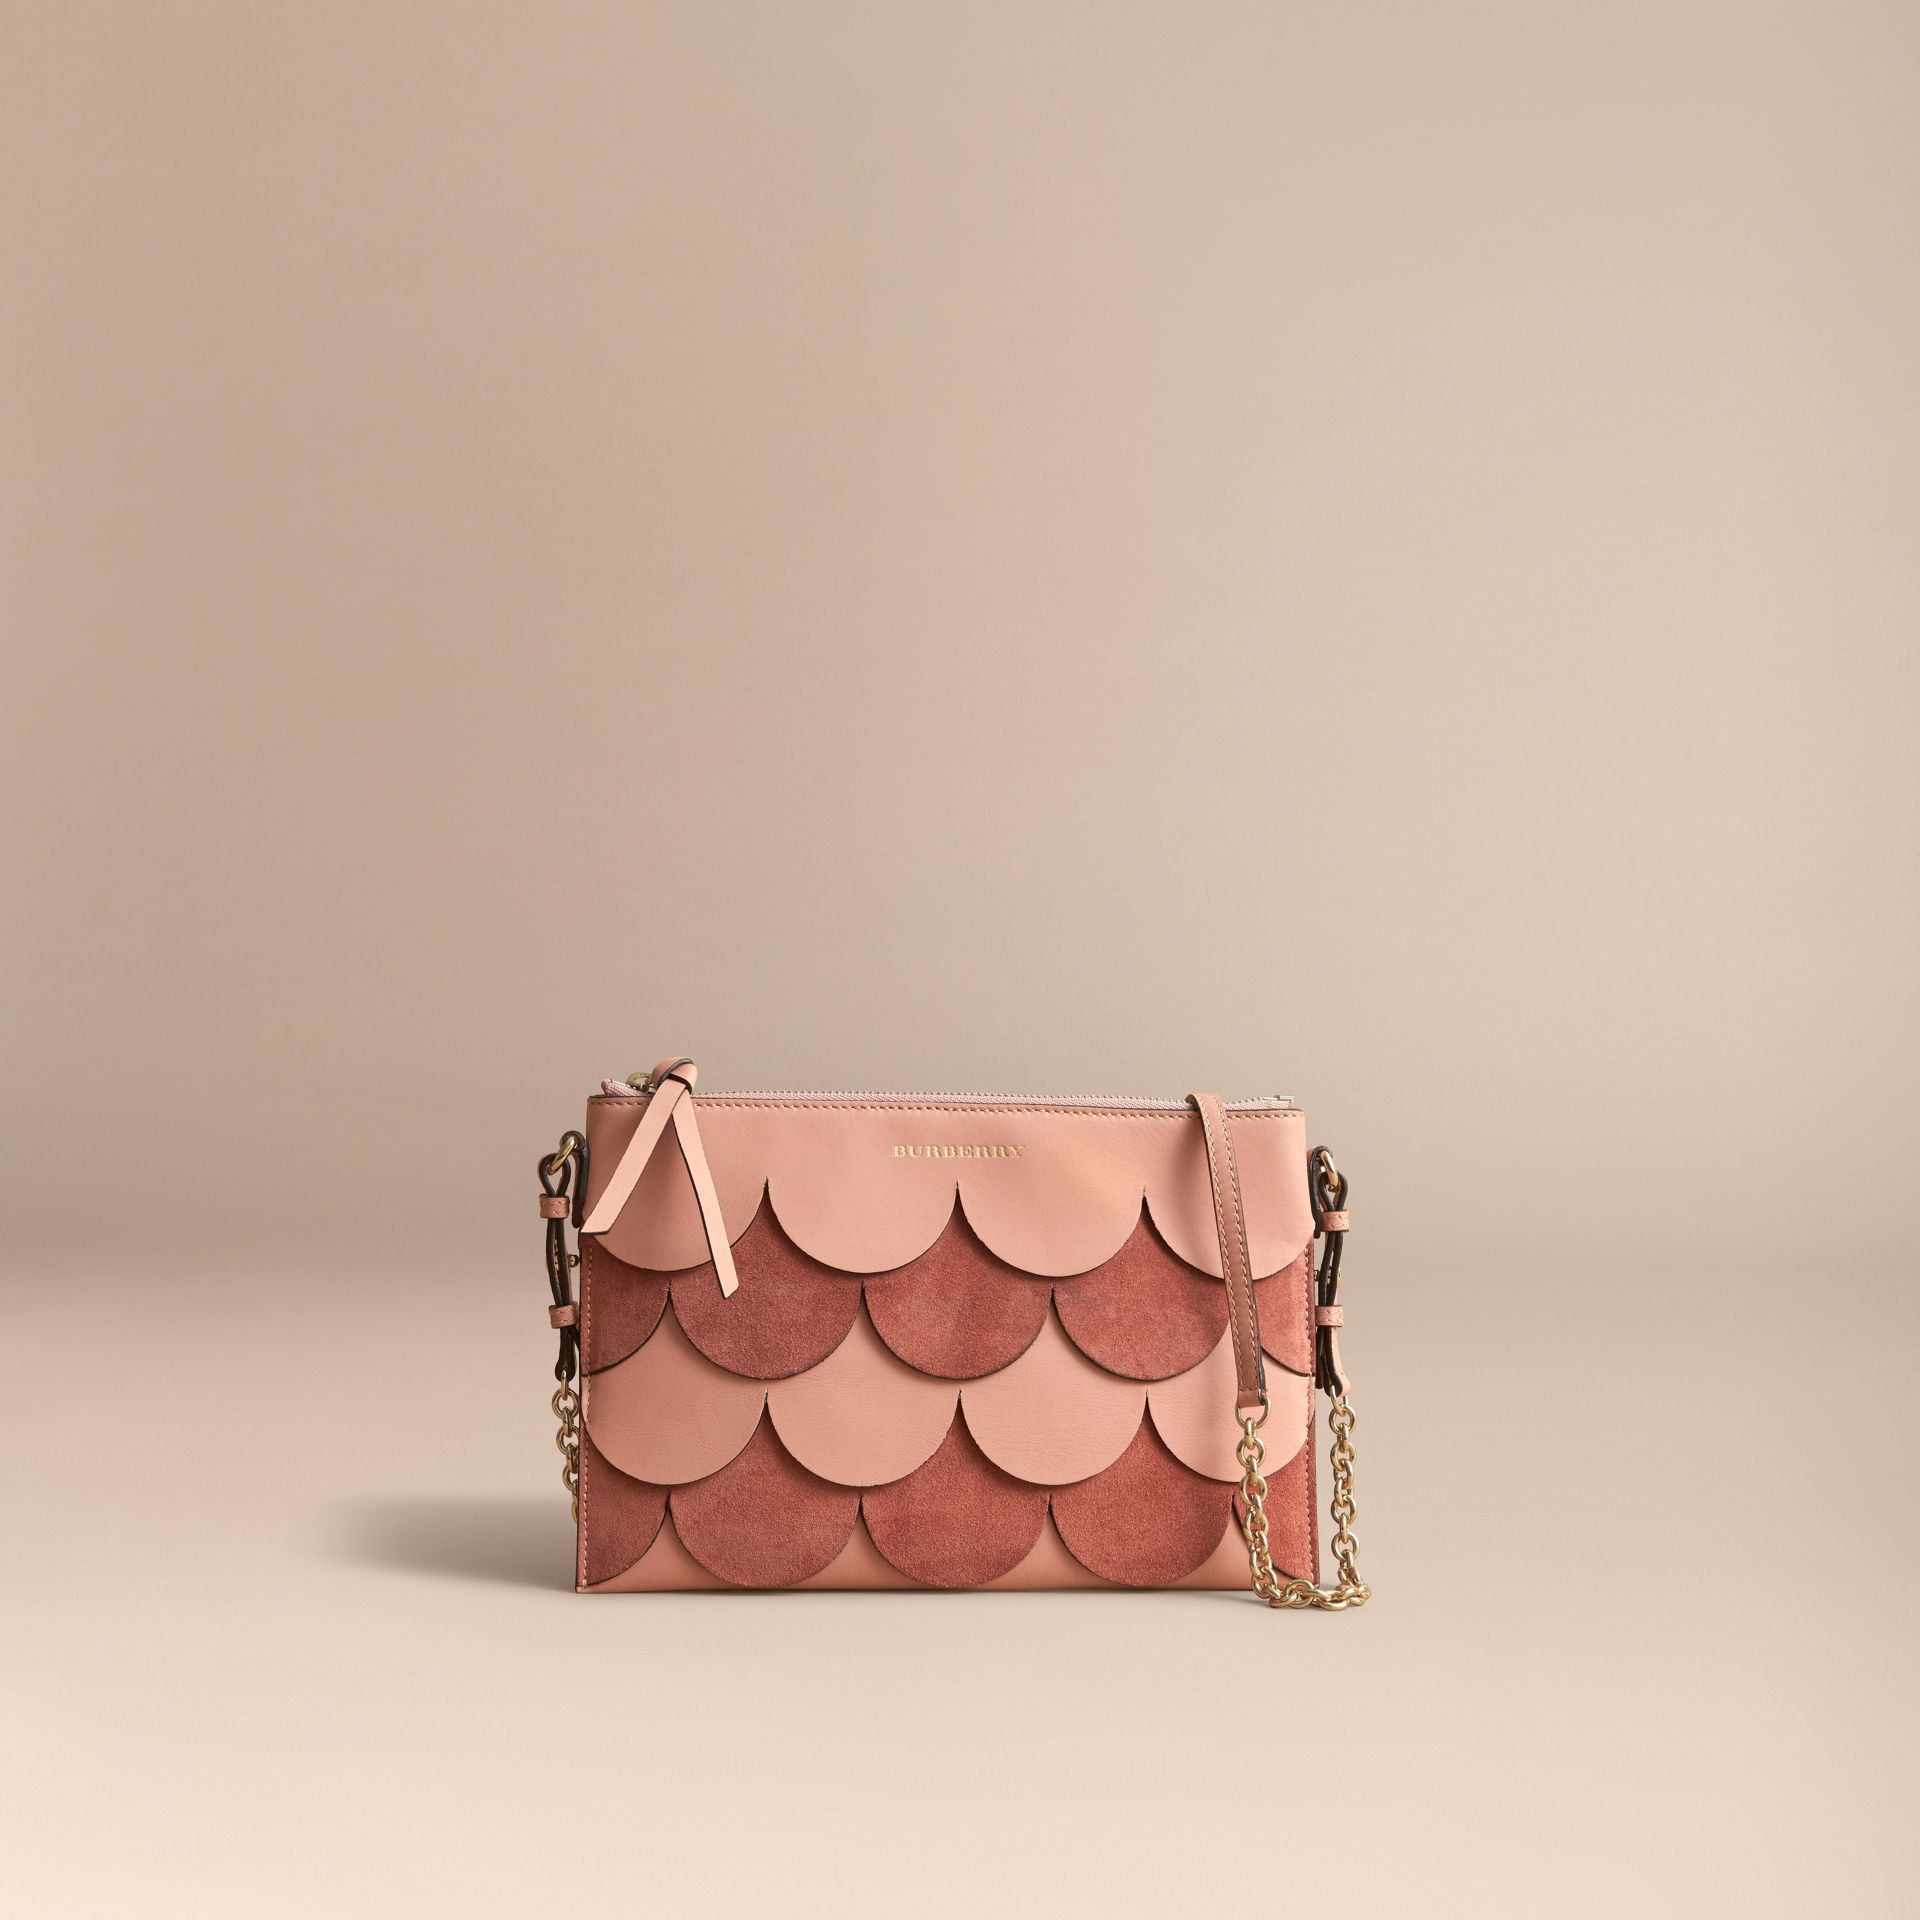 Two-tone Scalloped Leather and Suede Clutch Bag in Ash Rose - Women | Burberry - gallery image 7